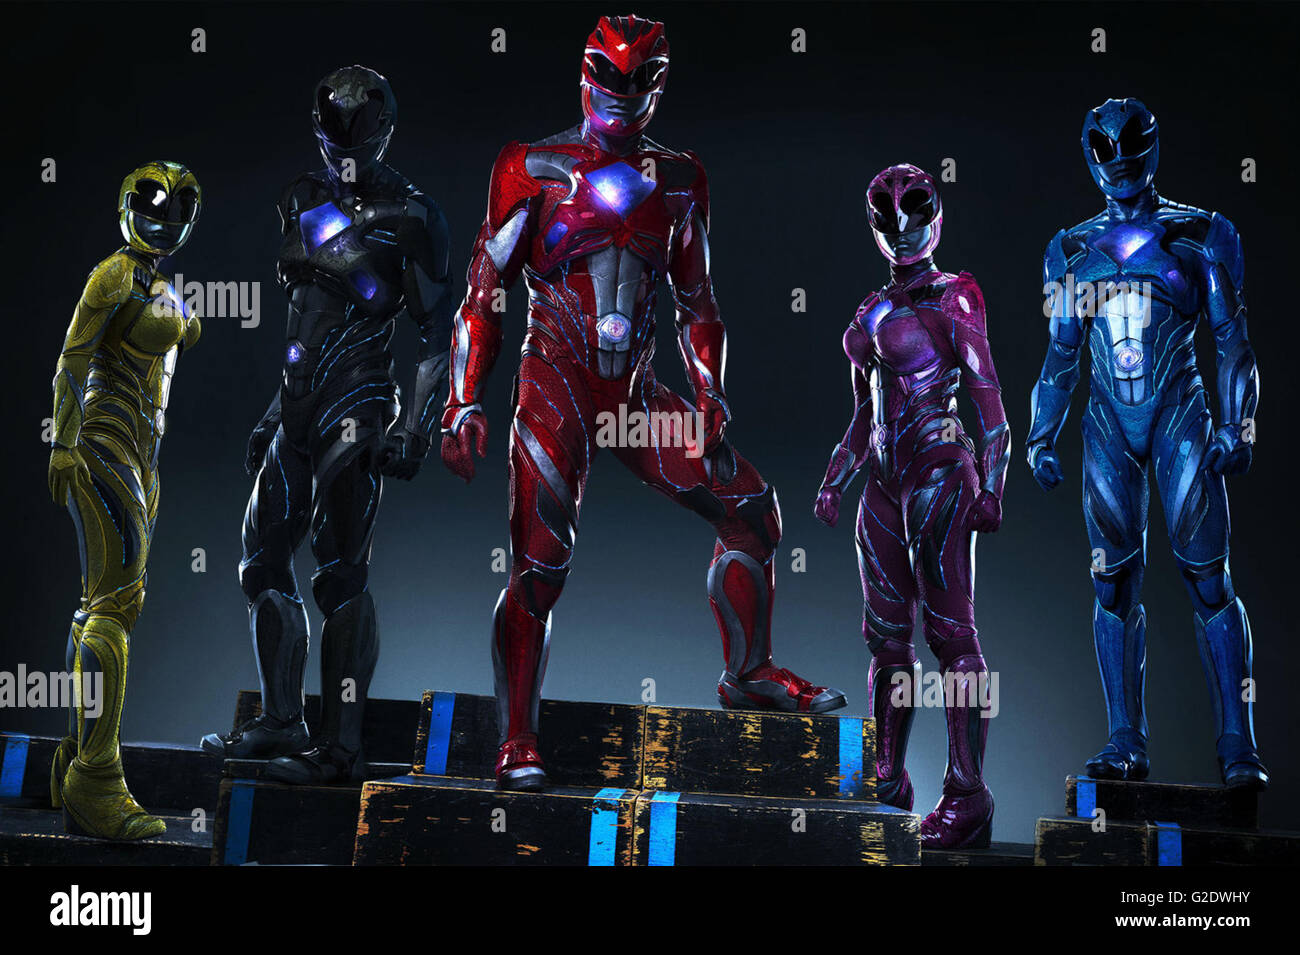 Power Rangers (announced as Saban's Power Rangers) is an upcoming 2017 American superhero film directed by Dean - Stock Image